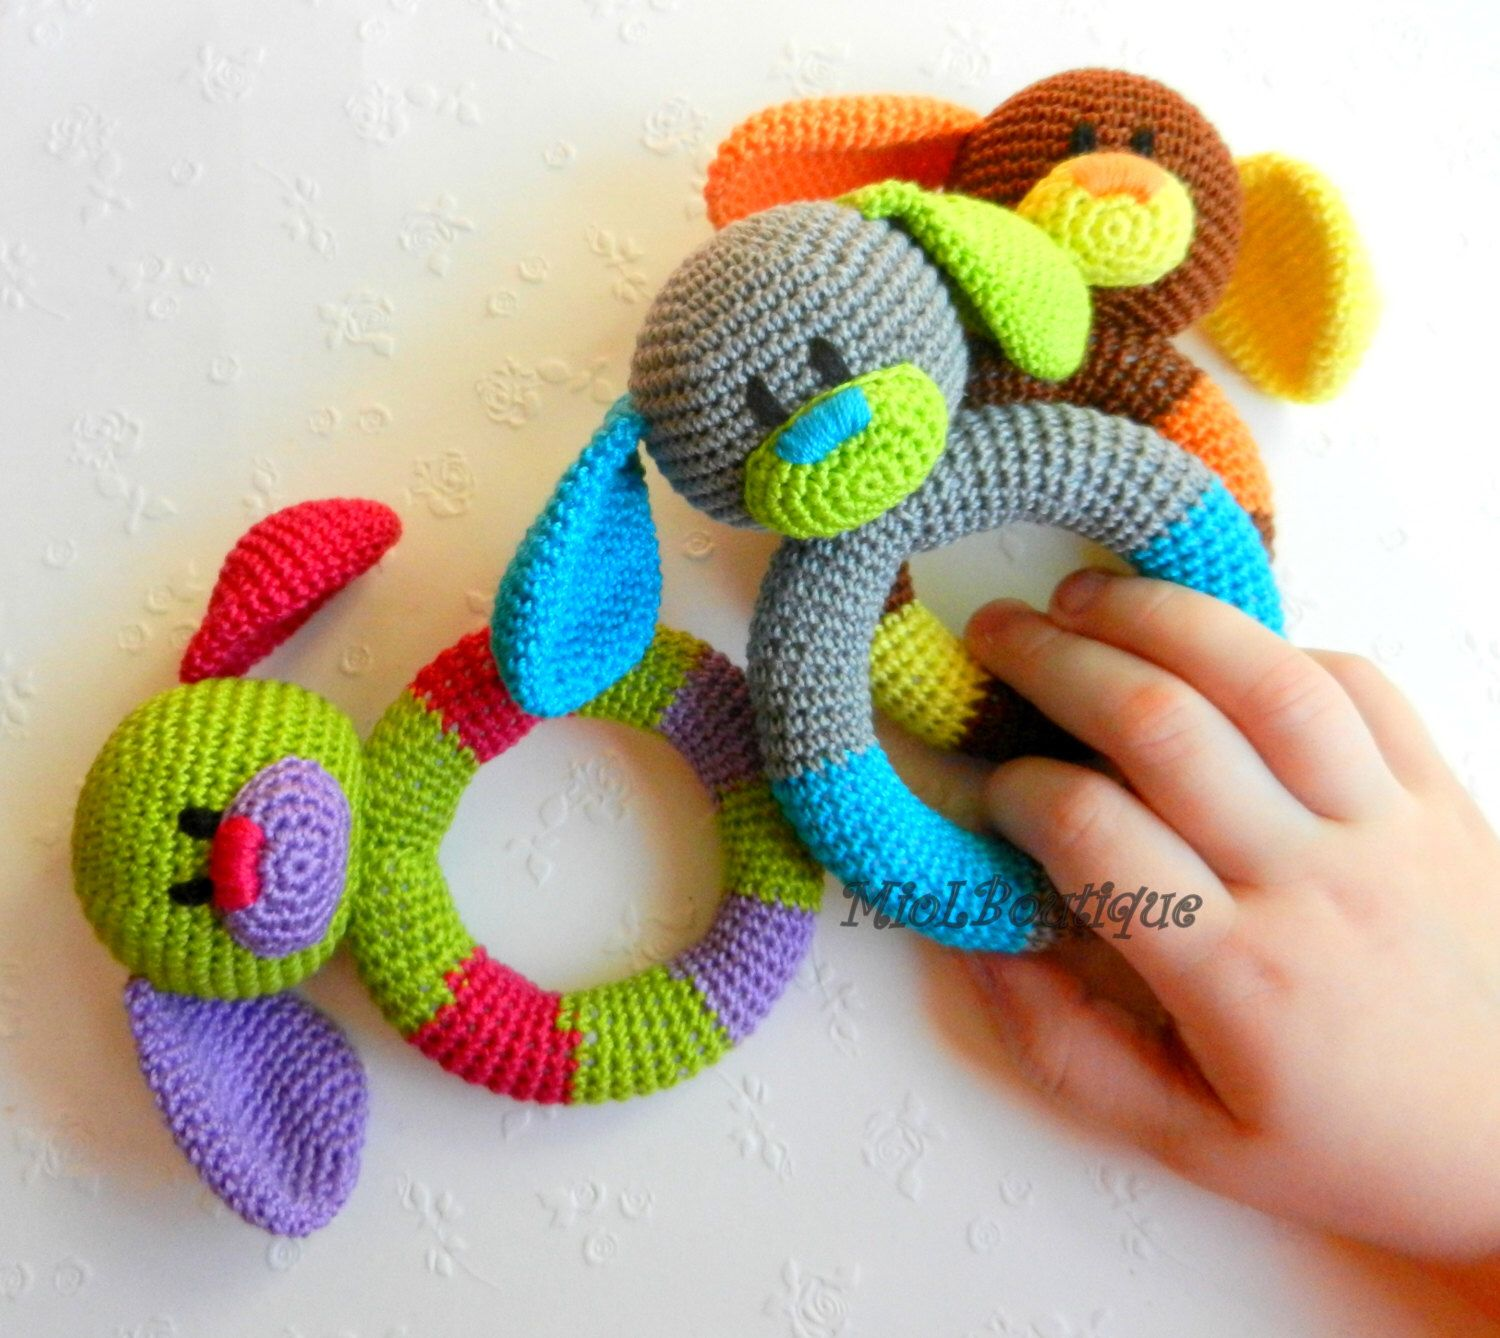 Crochet baby toy Teething baby toy Grasping and Teething Toys